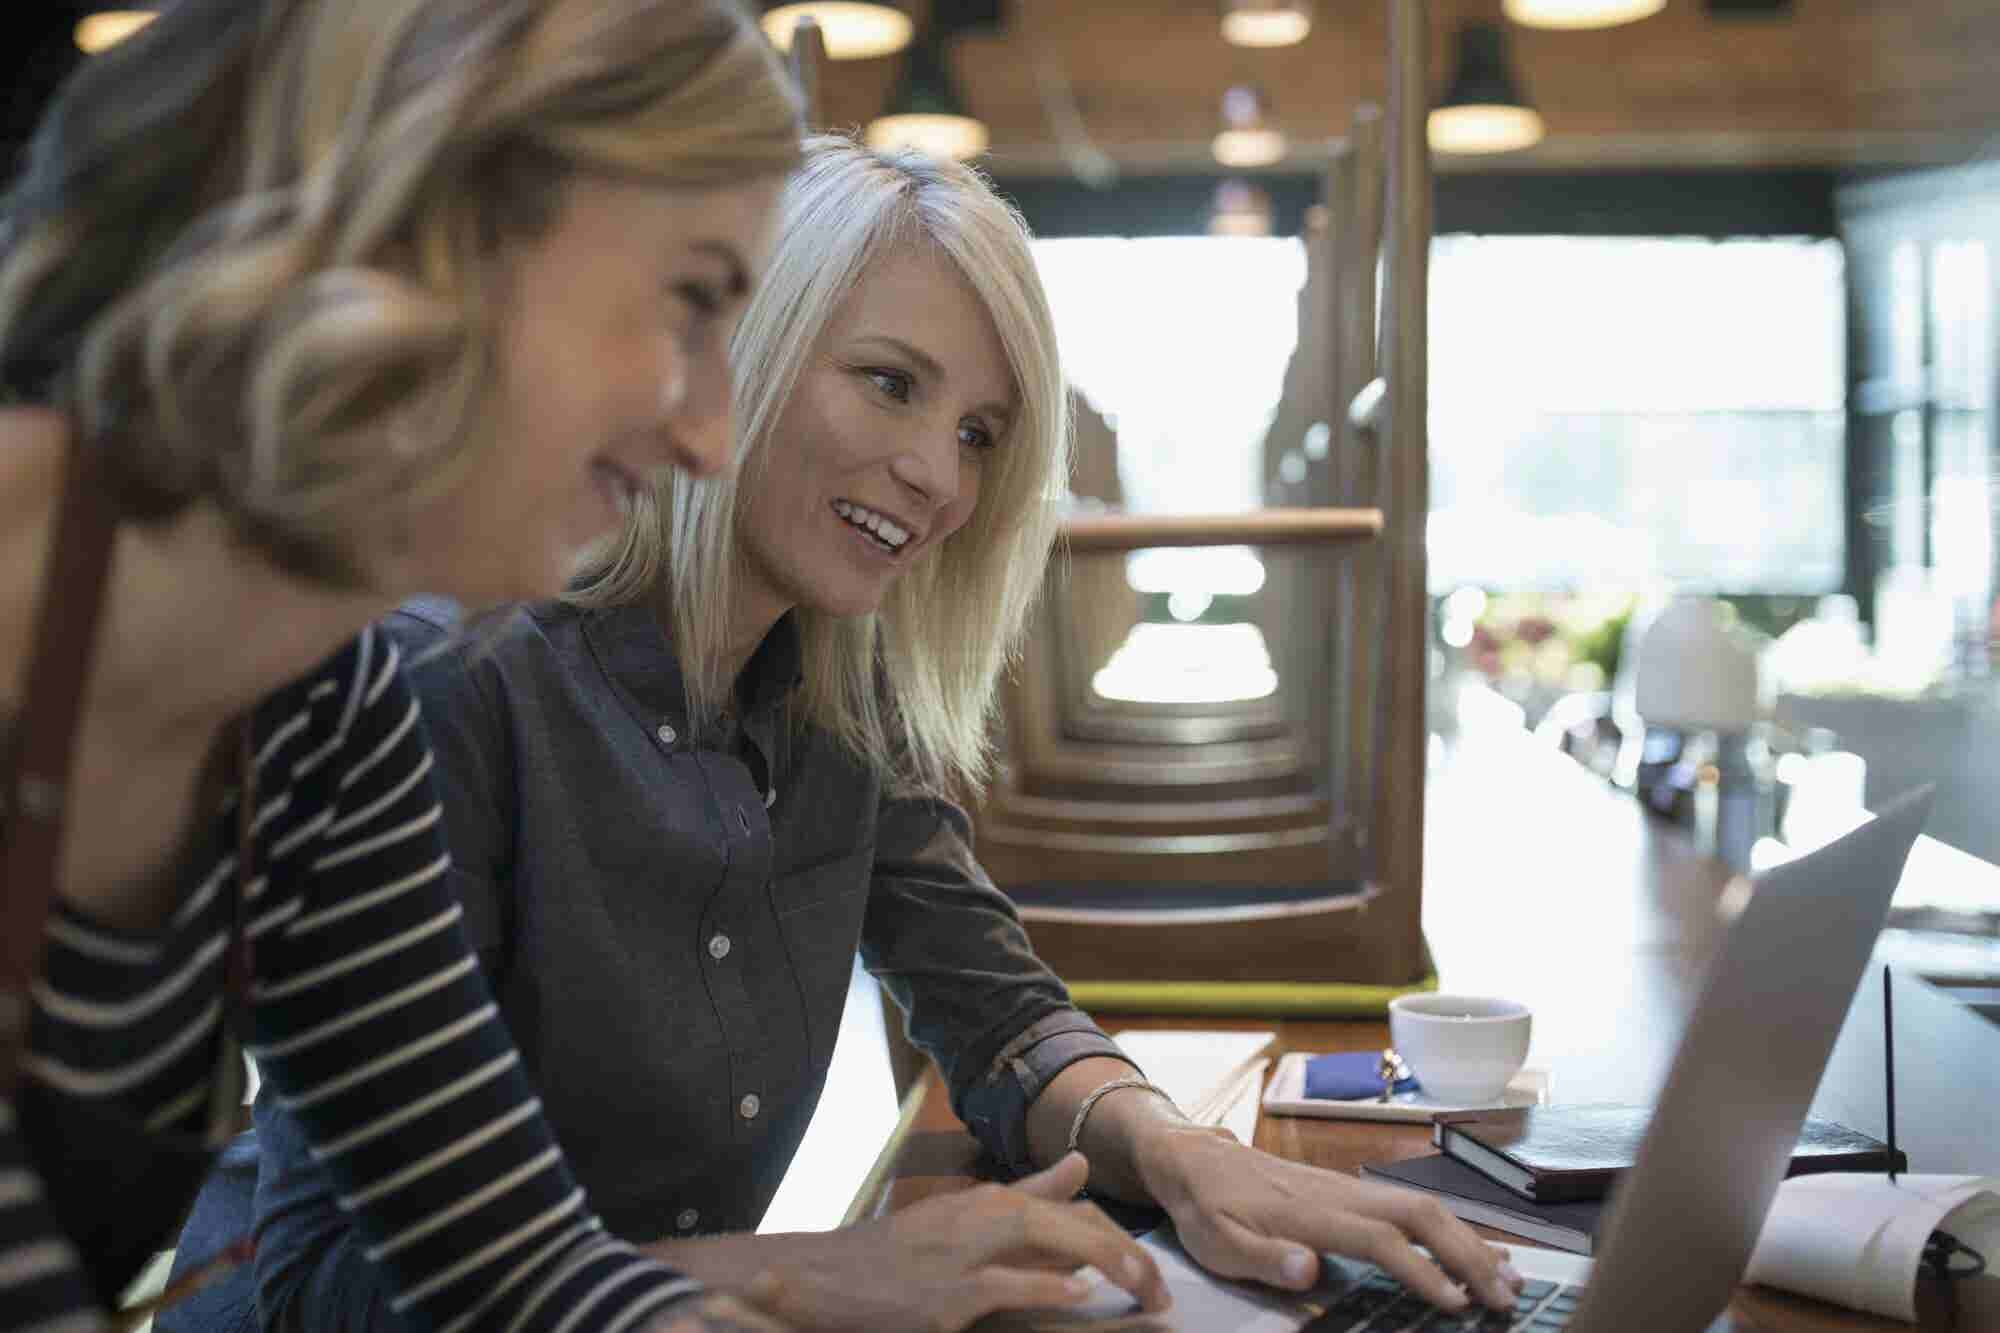 Women Job Seekers Should Target Small Employers That Can Better Offer Work Flexibility